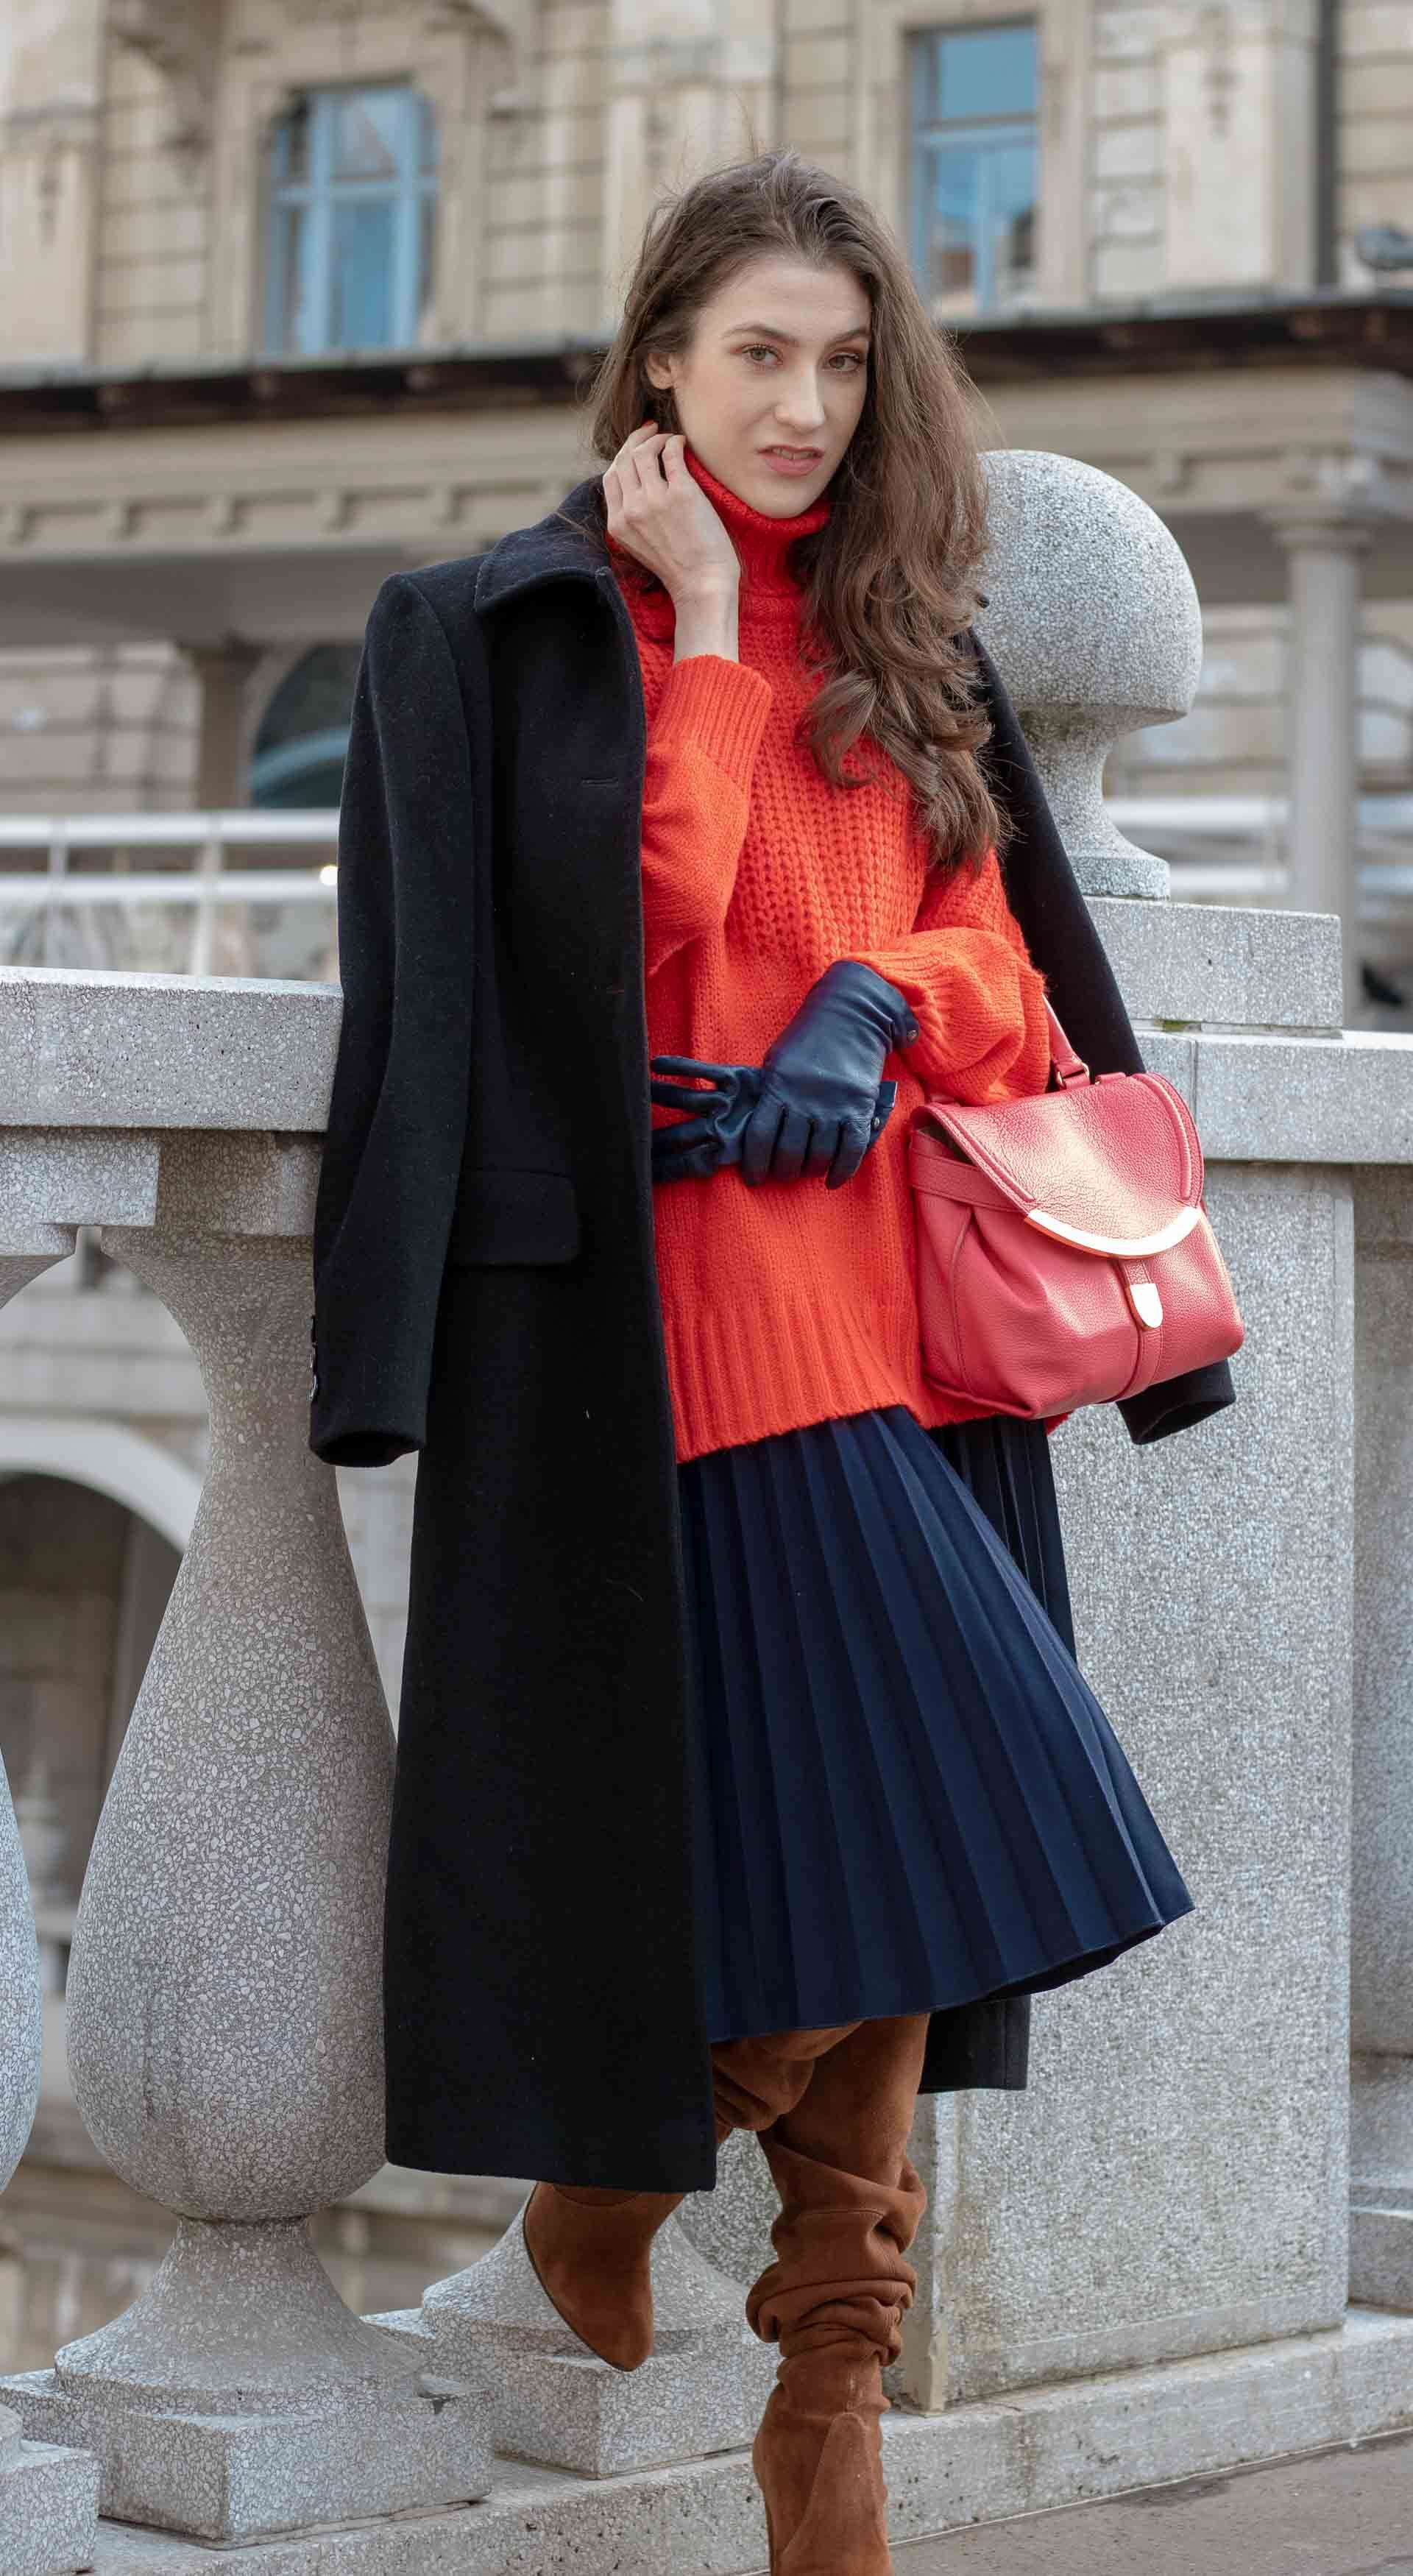 fccd7fd1e92a Fashion Blogger Veronika Lipar of Brunette from Wall Street sharing how to  wear skirt in 2019  fashion  blogpost  everydayoutfit  fashionable   fashiontrends ...